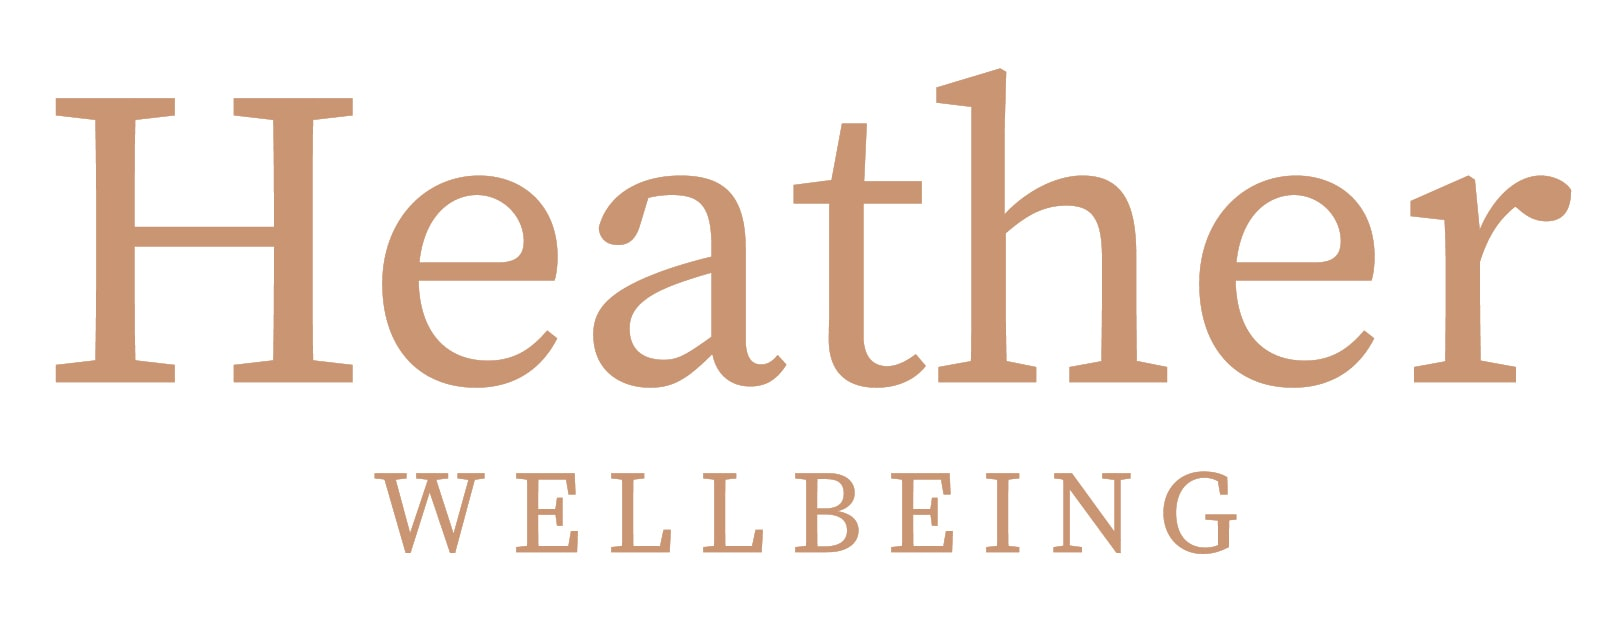 Heather - Wellbeing & Therapy